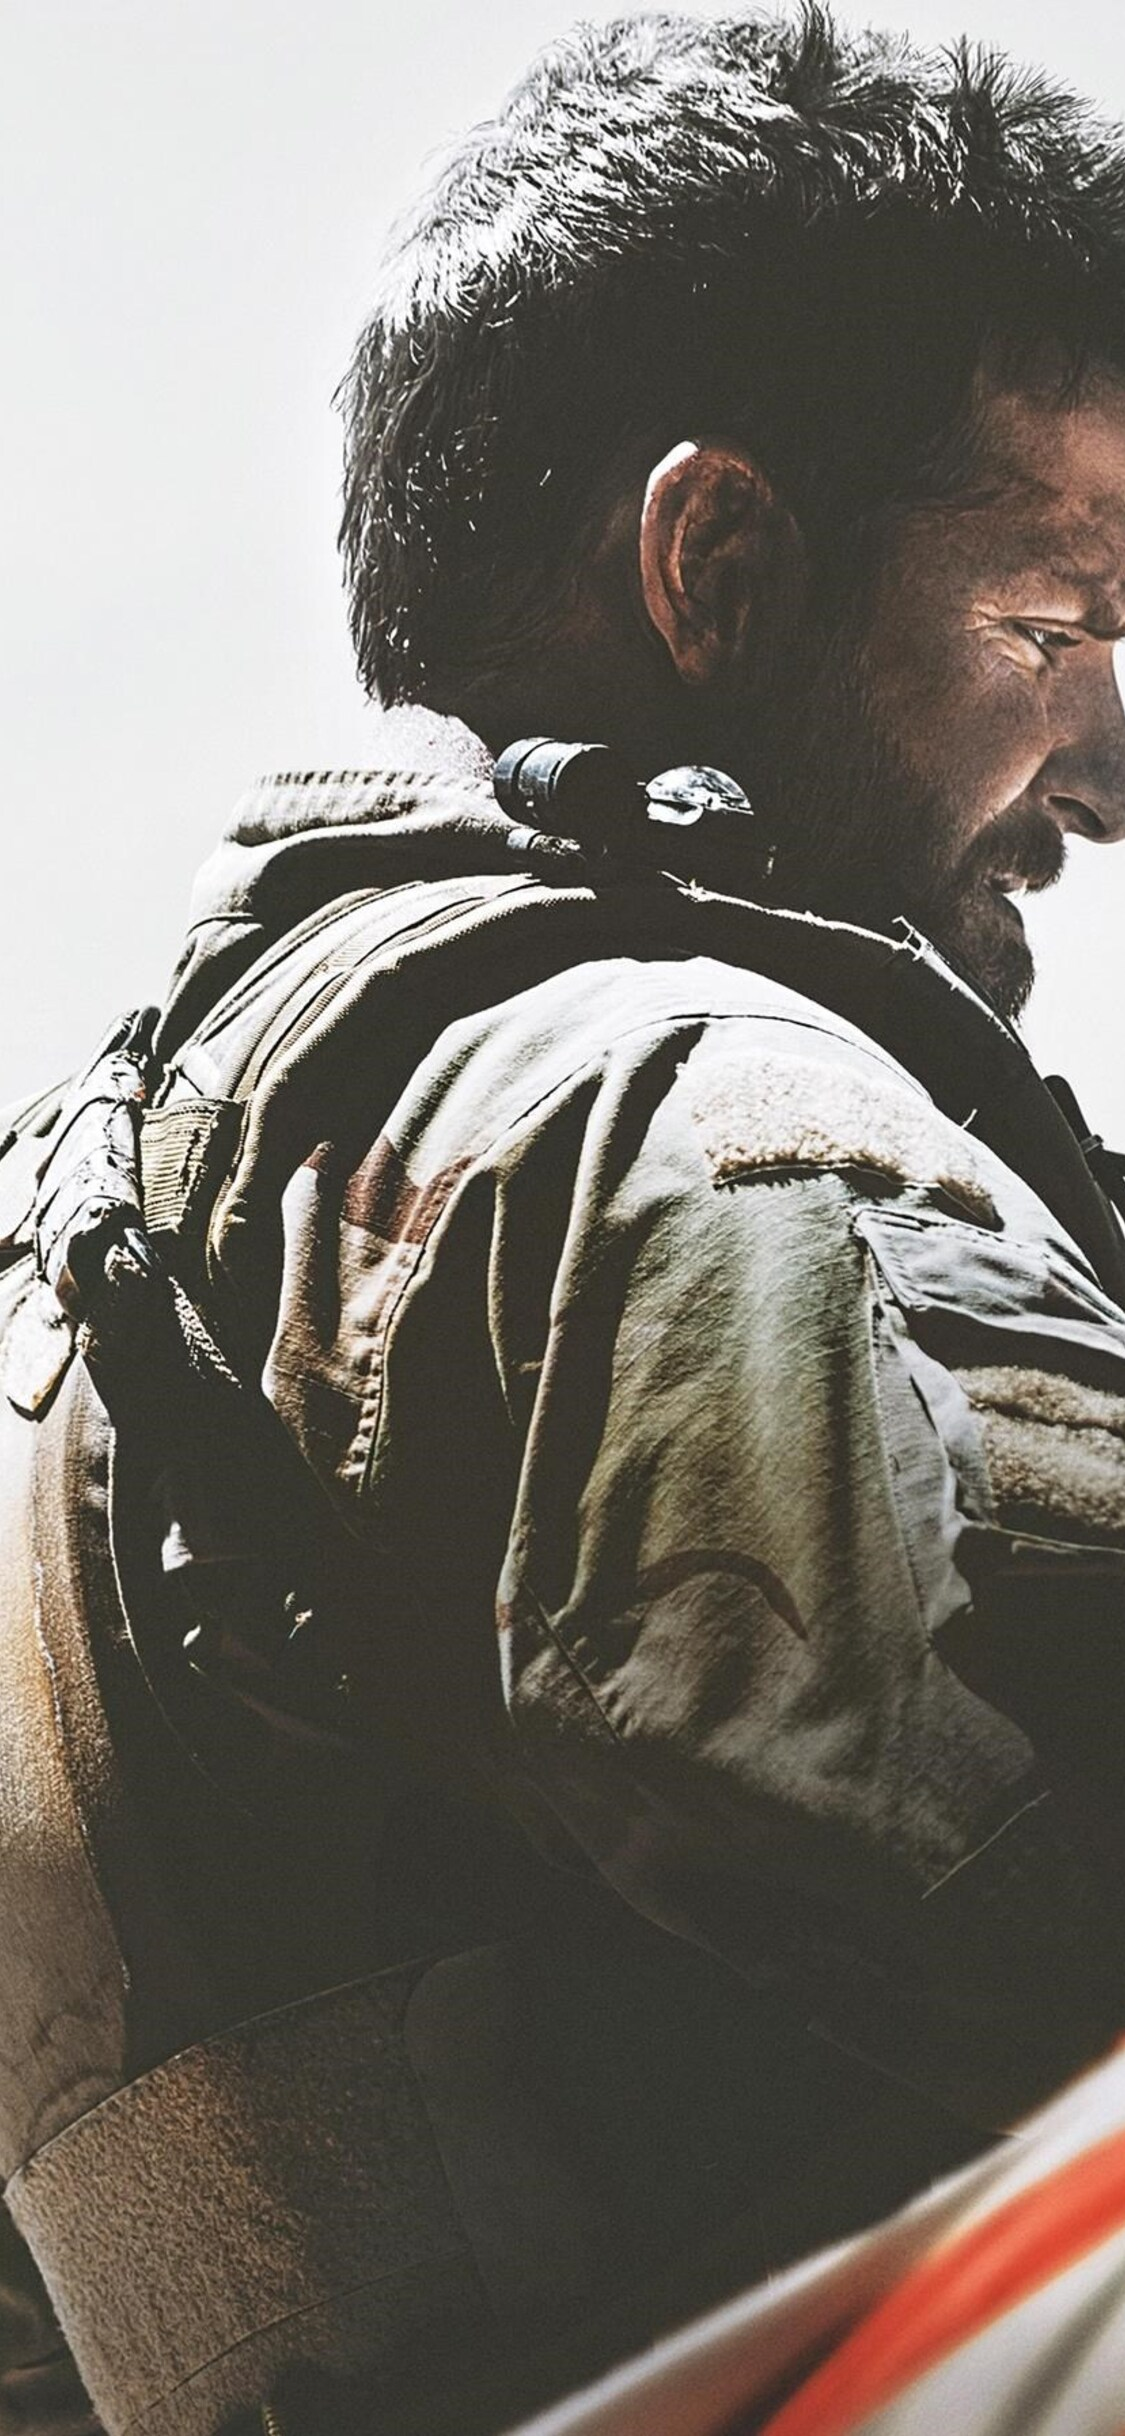 1125x2436 American Sniper Movie Iphone Xs Iphone 10 Iphone X Hd 4k Wallpapers Images Backgrounds Photos And Pictures